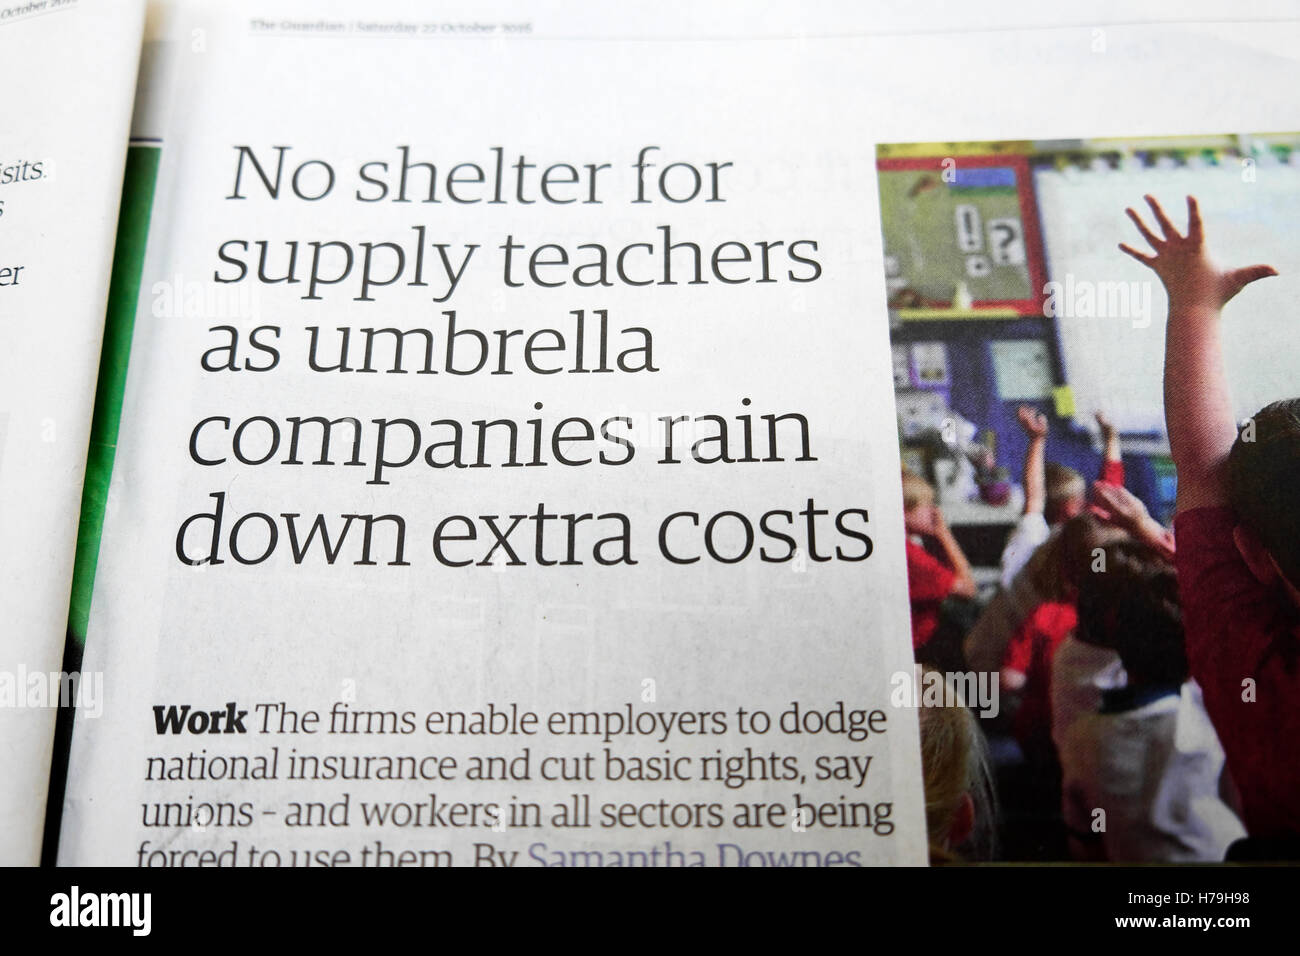 'No shelter for supply teachers as umbrella companies rain down extra costs'  newspaper headline UK - Stock Image